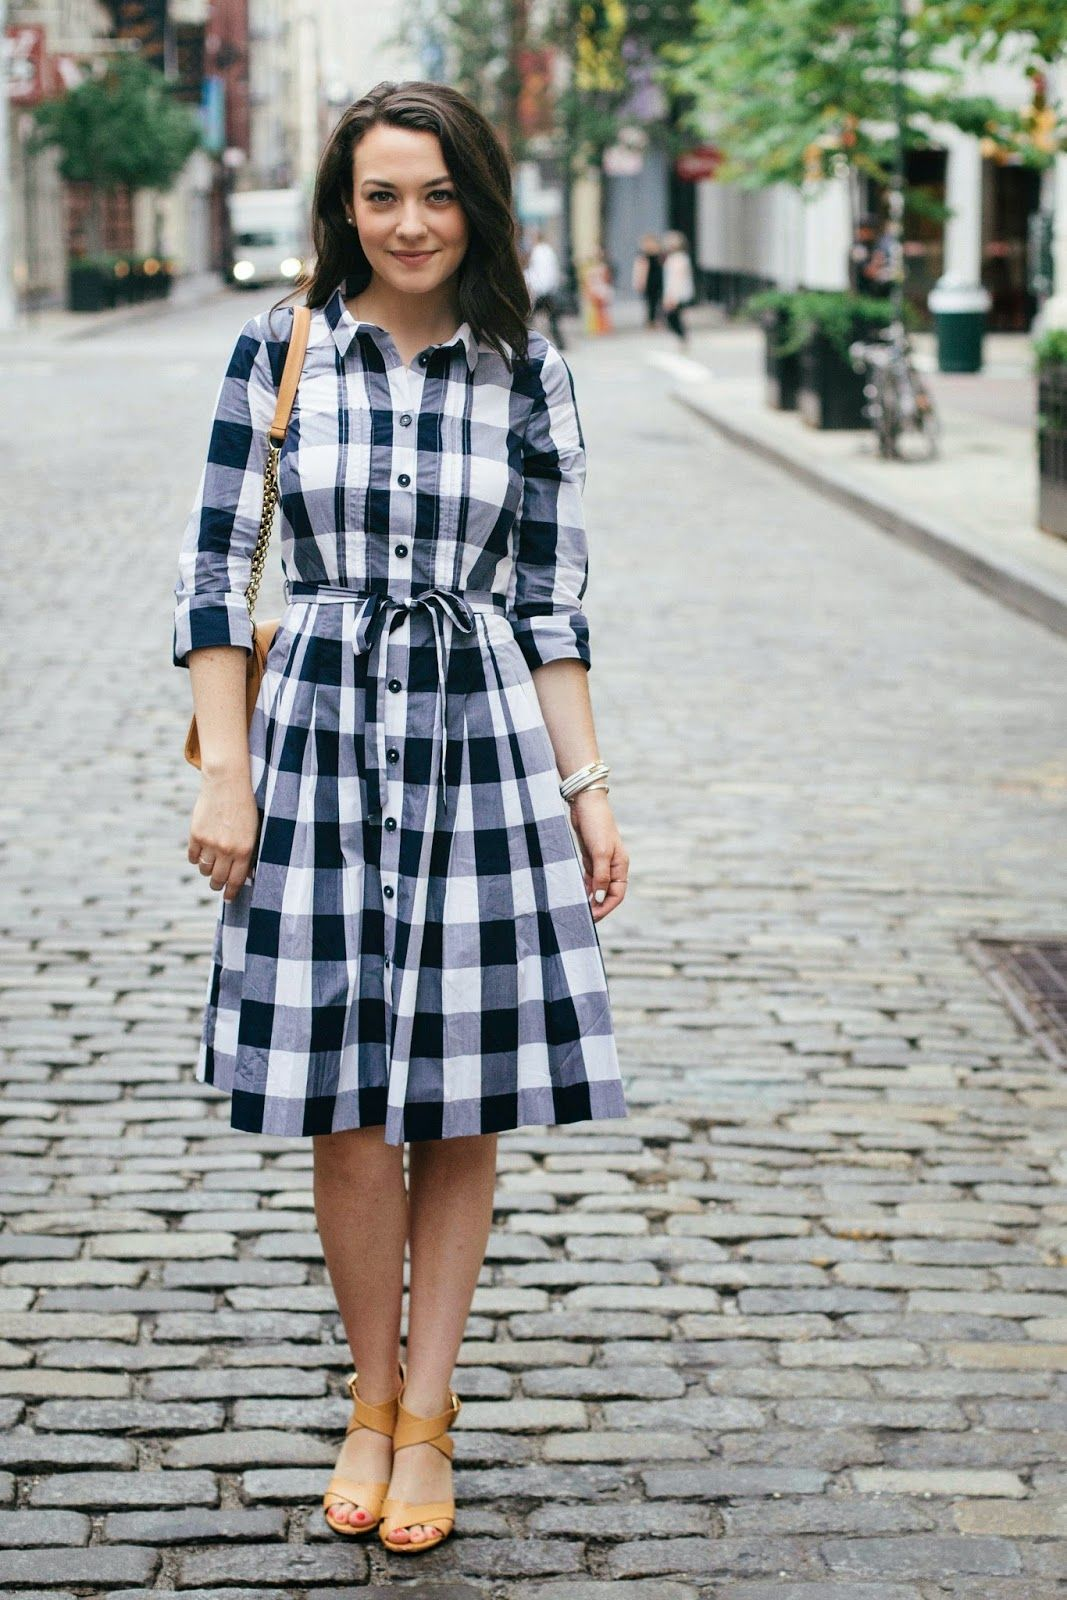 ac31444bdf89 Gingham Shirtdress + tan strappy heeled sandals - love the dress, shoes not  so much.